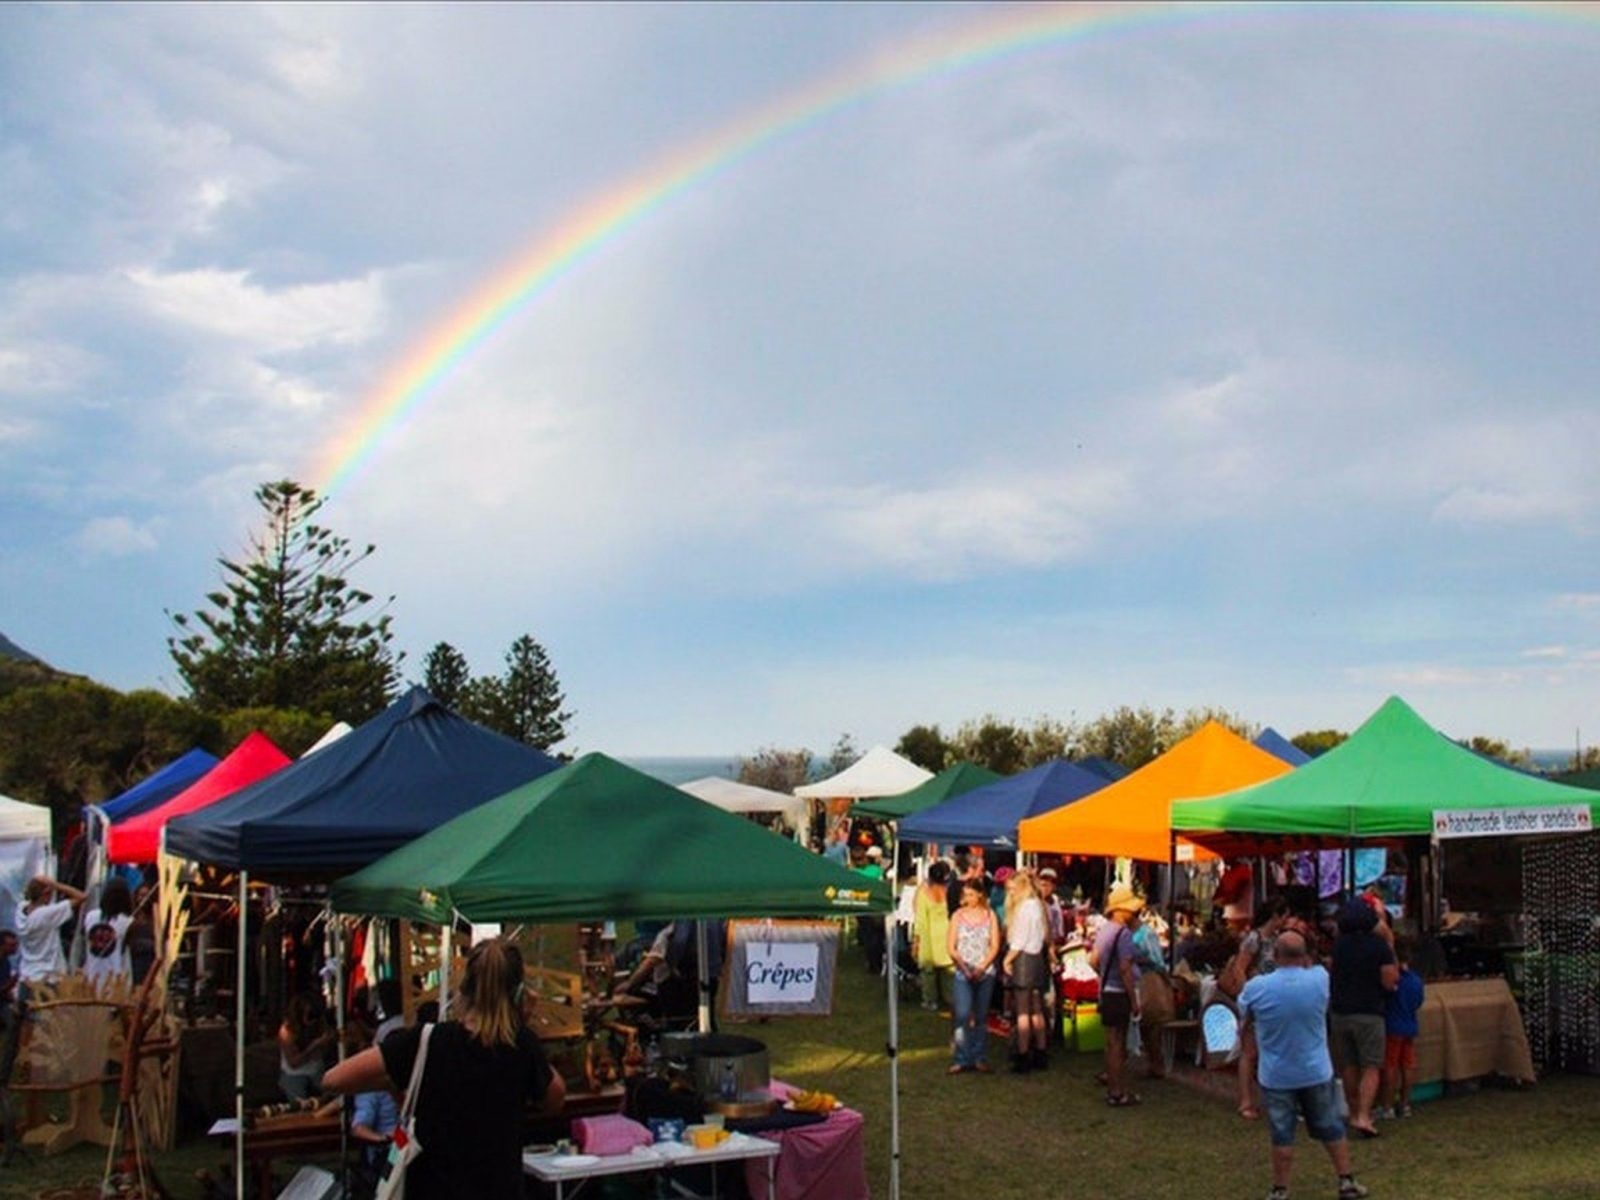 Coledale markets, coal coast, northern illawarra whats on in wollongong